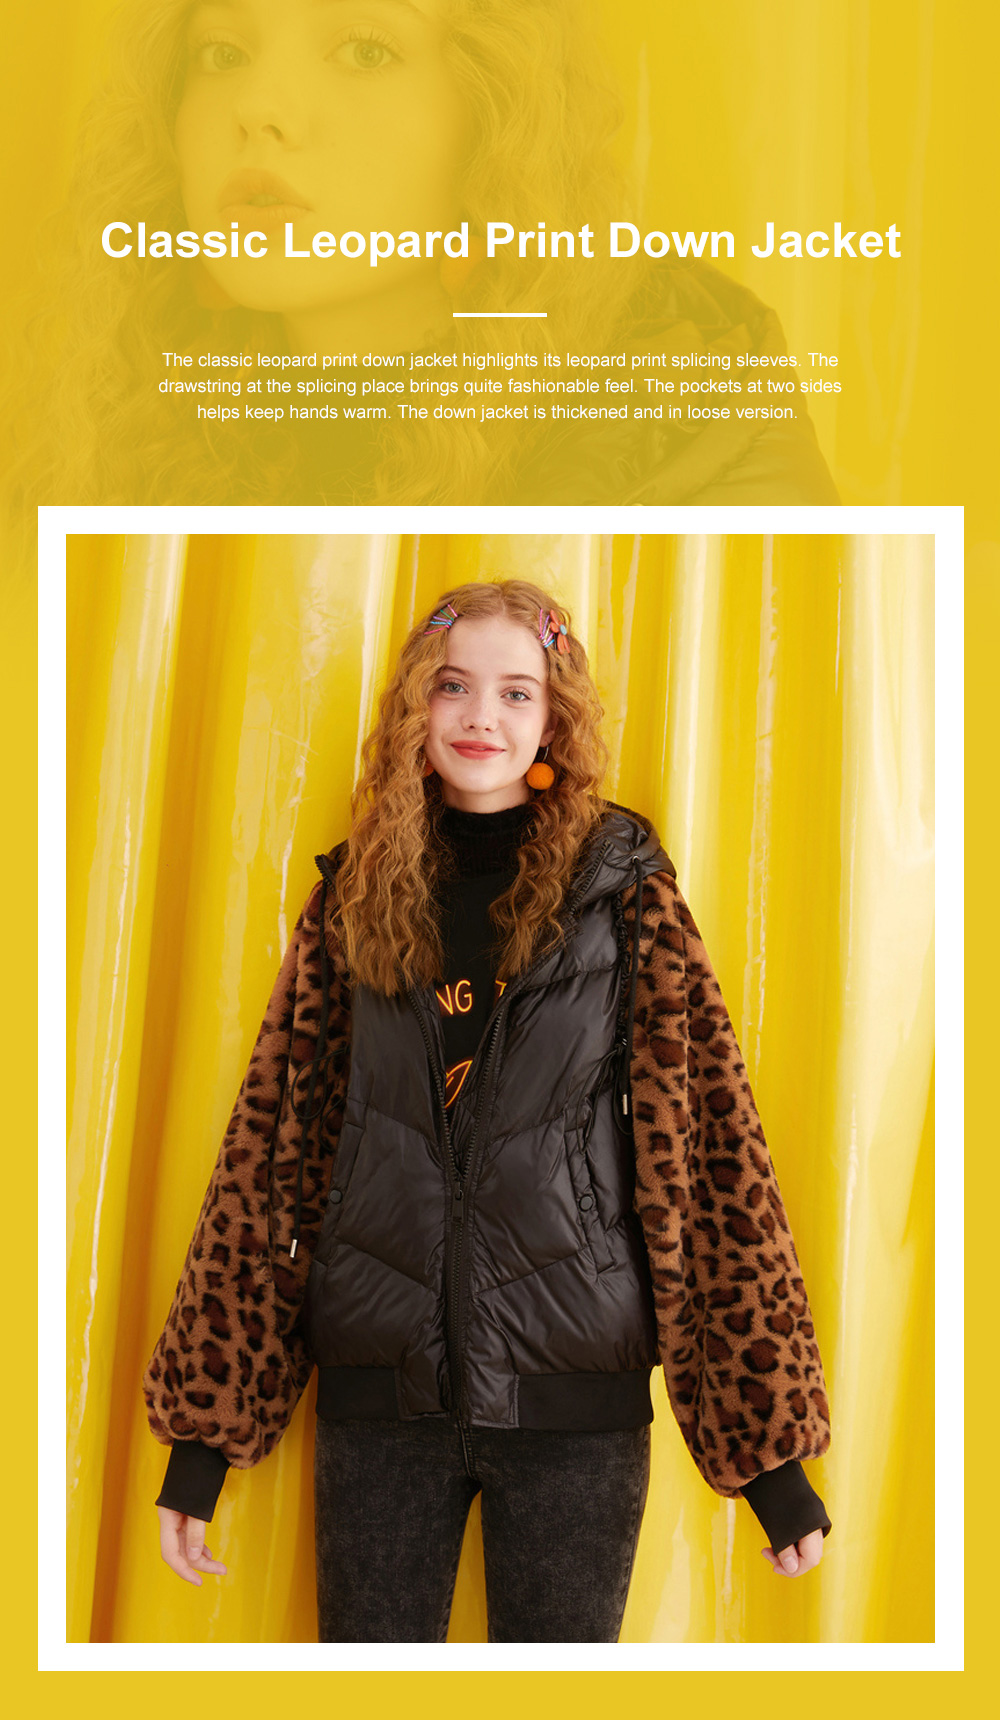 ELF SACK Classic Leopard Print Down Jacket for Women Winter Wear Thickened Splicing Hoody Down Coat Thermal Down Jacket 0